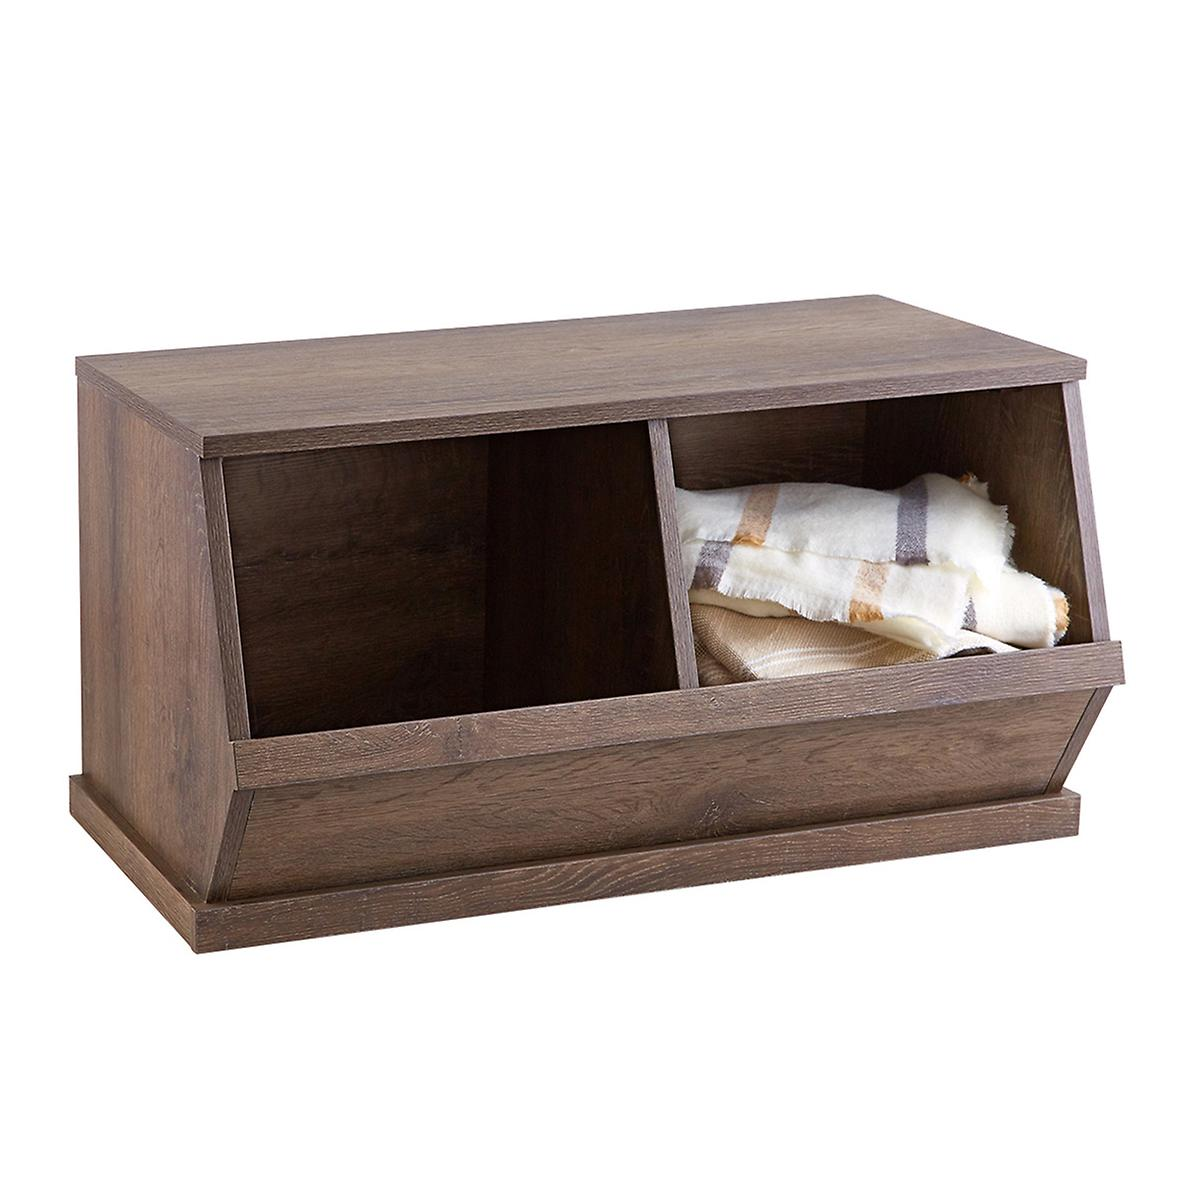 Rustic Driftwood Nantucket Stackable Storage Bin